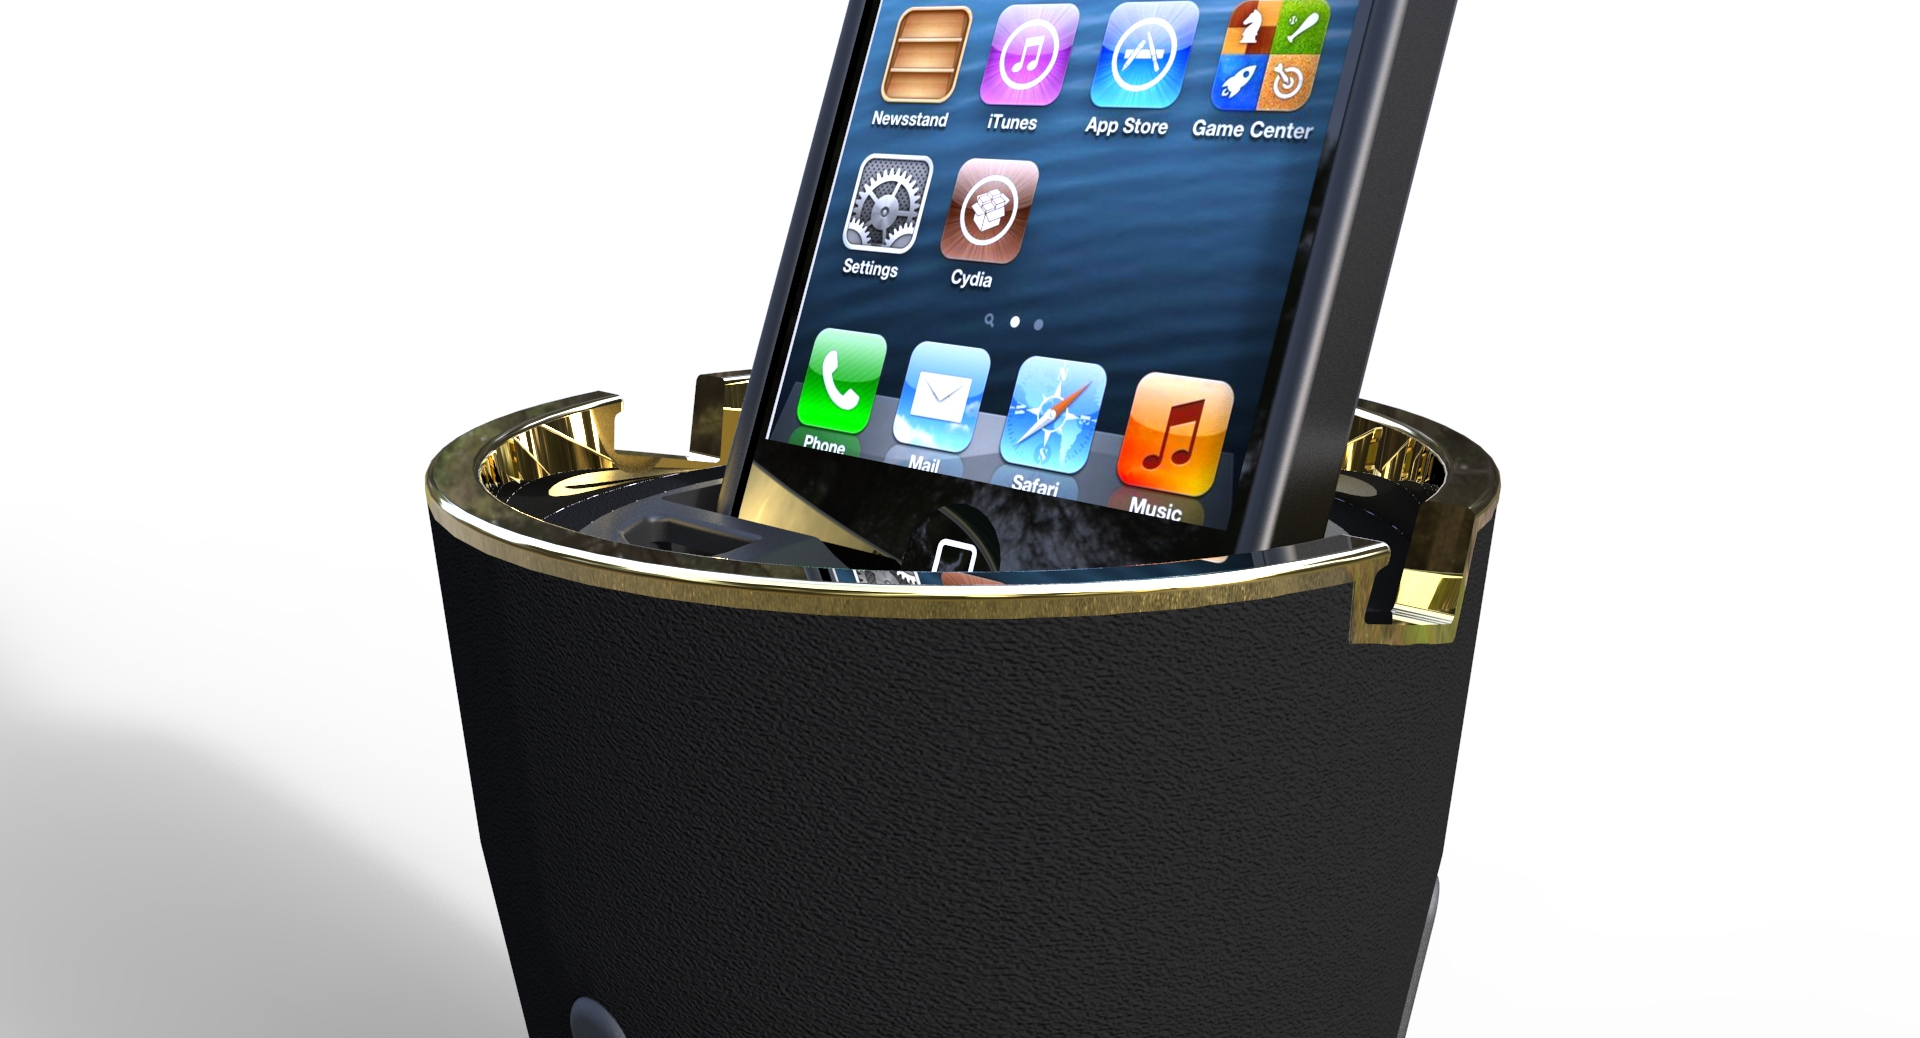 Iphone Car Dock: IPhone Car Mount DockNStore To Be Awarded Monthly In New